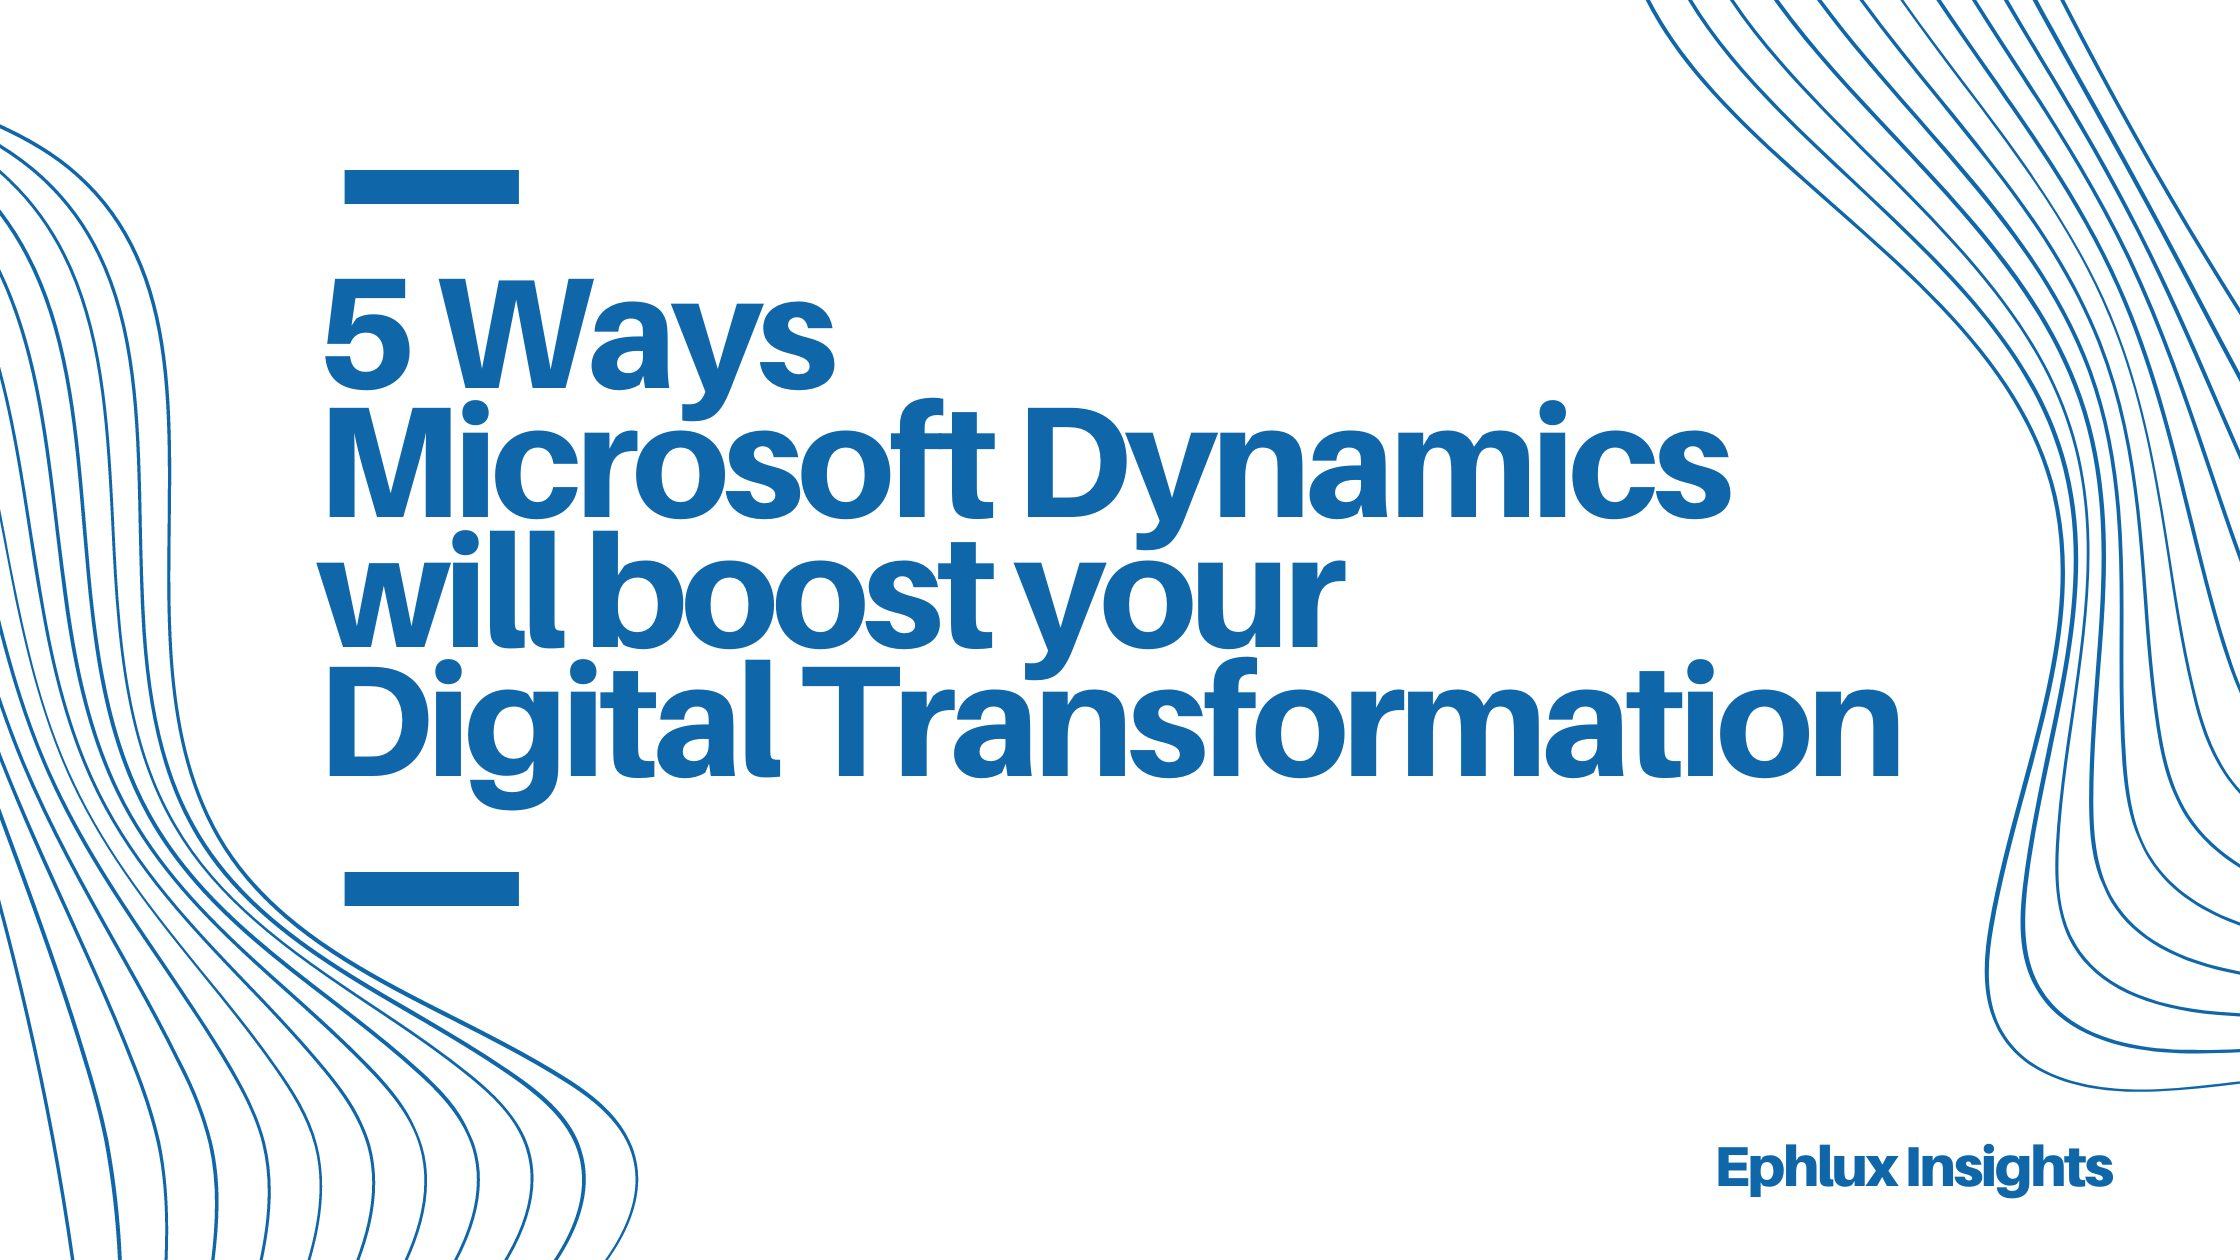 5 Ways Microsoft Dynamics will boost your Digital Transformation